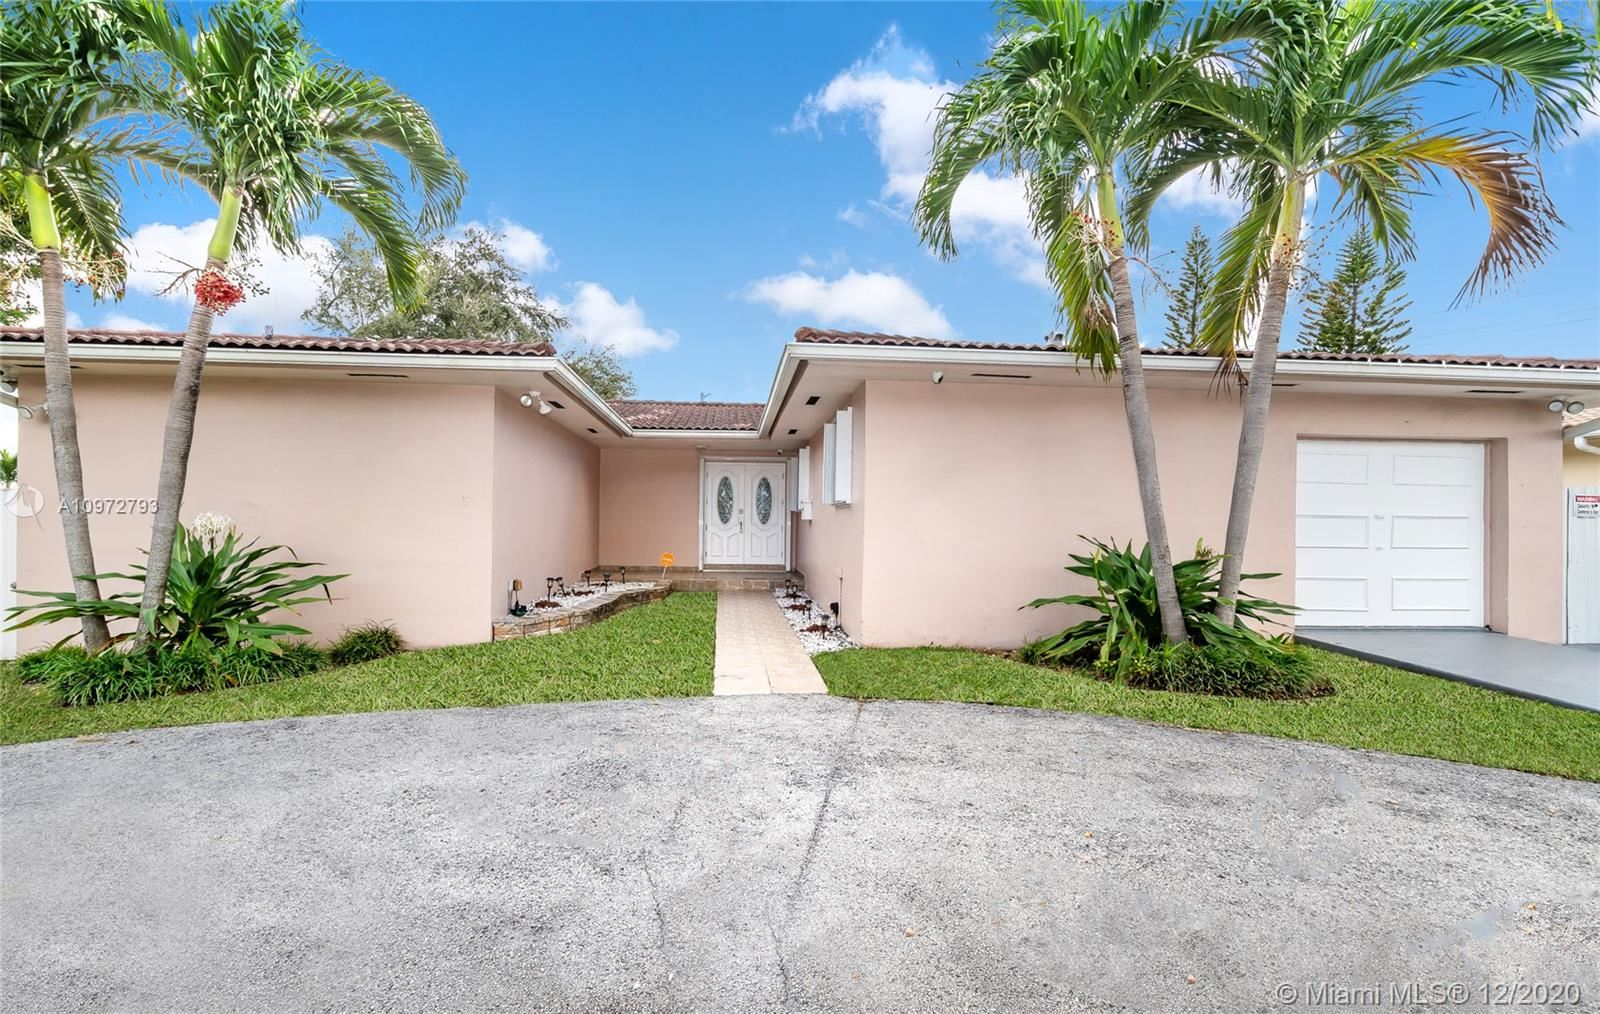 240 S Royal Poinciana Blvd, Miami Springs, FL 33166 - #: A10972793